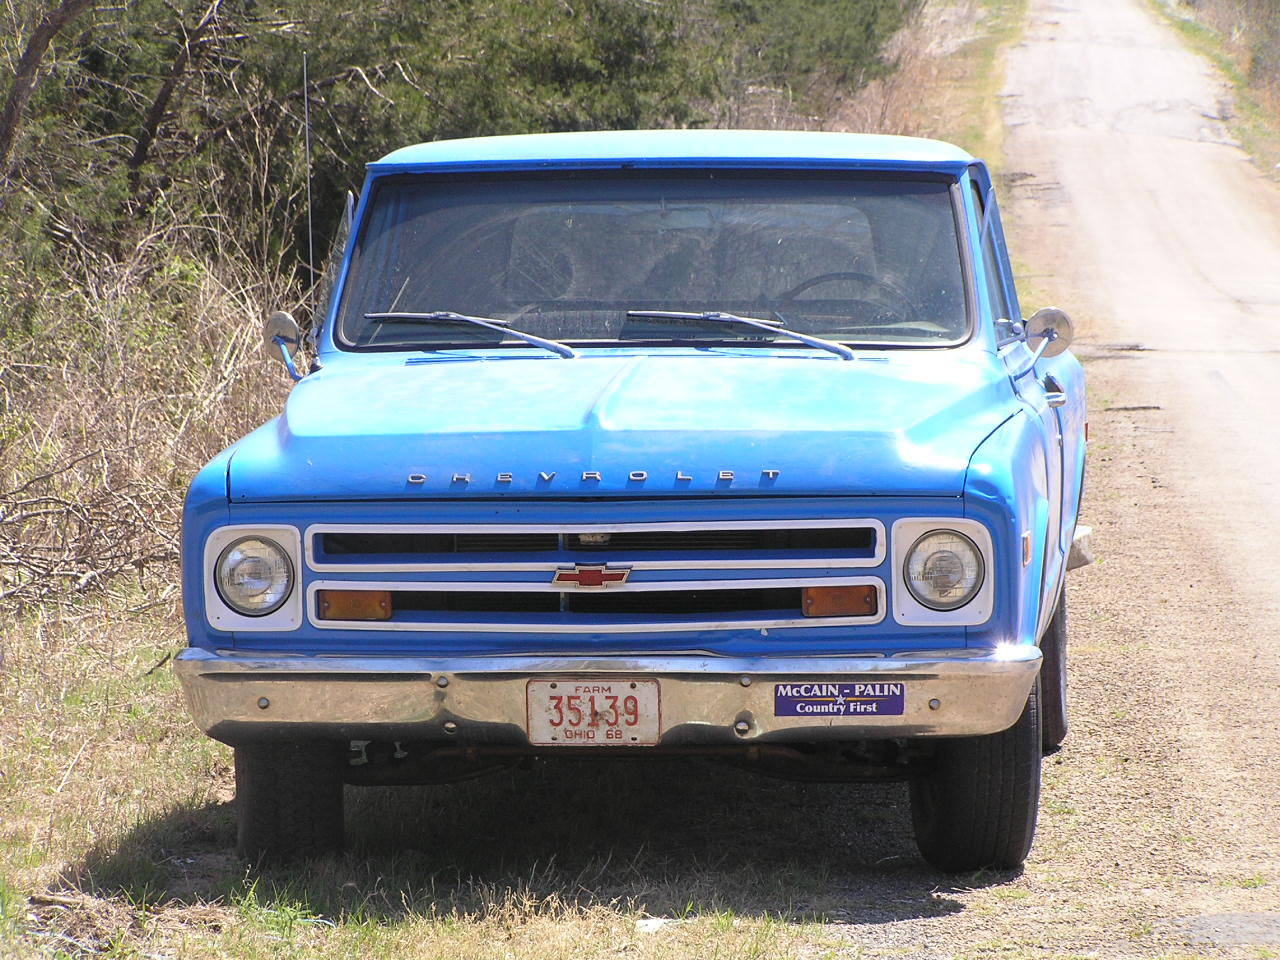 The 1970 Truck Page 1968 Chevy Suburban 4x4